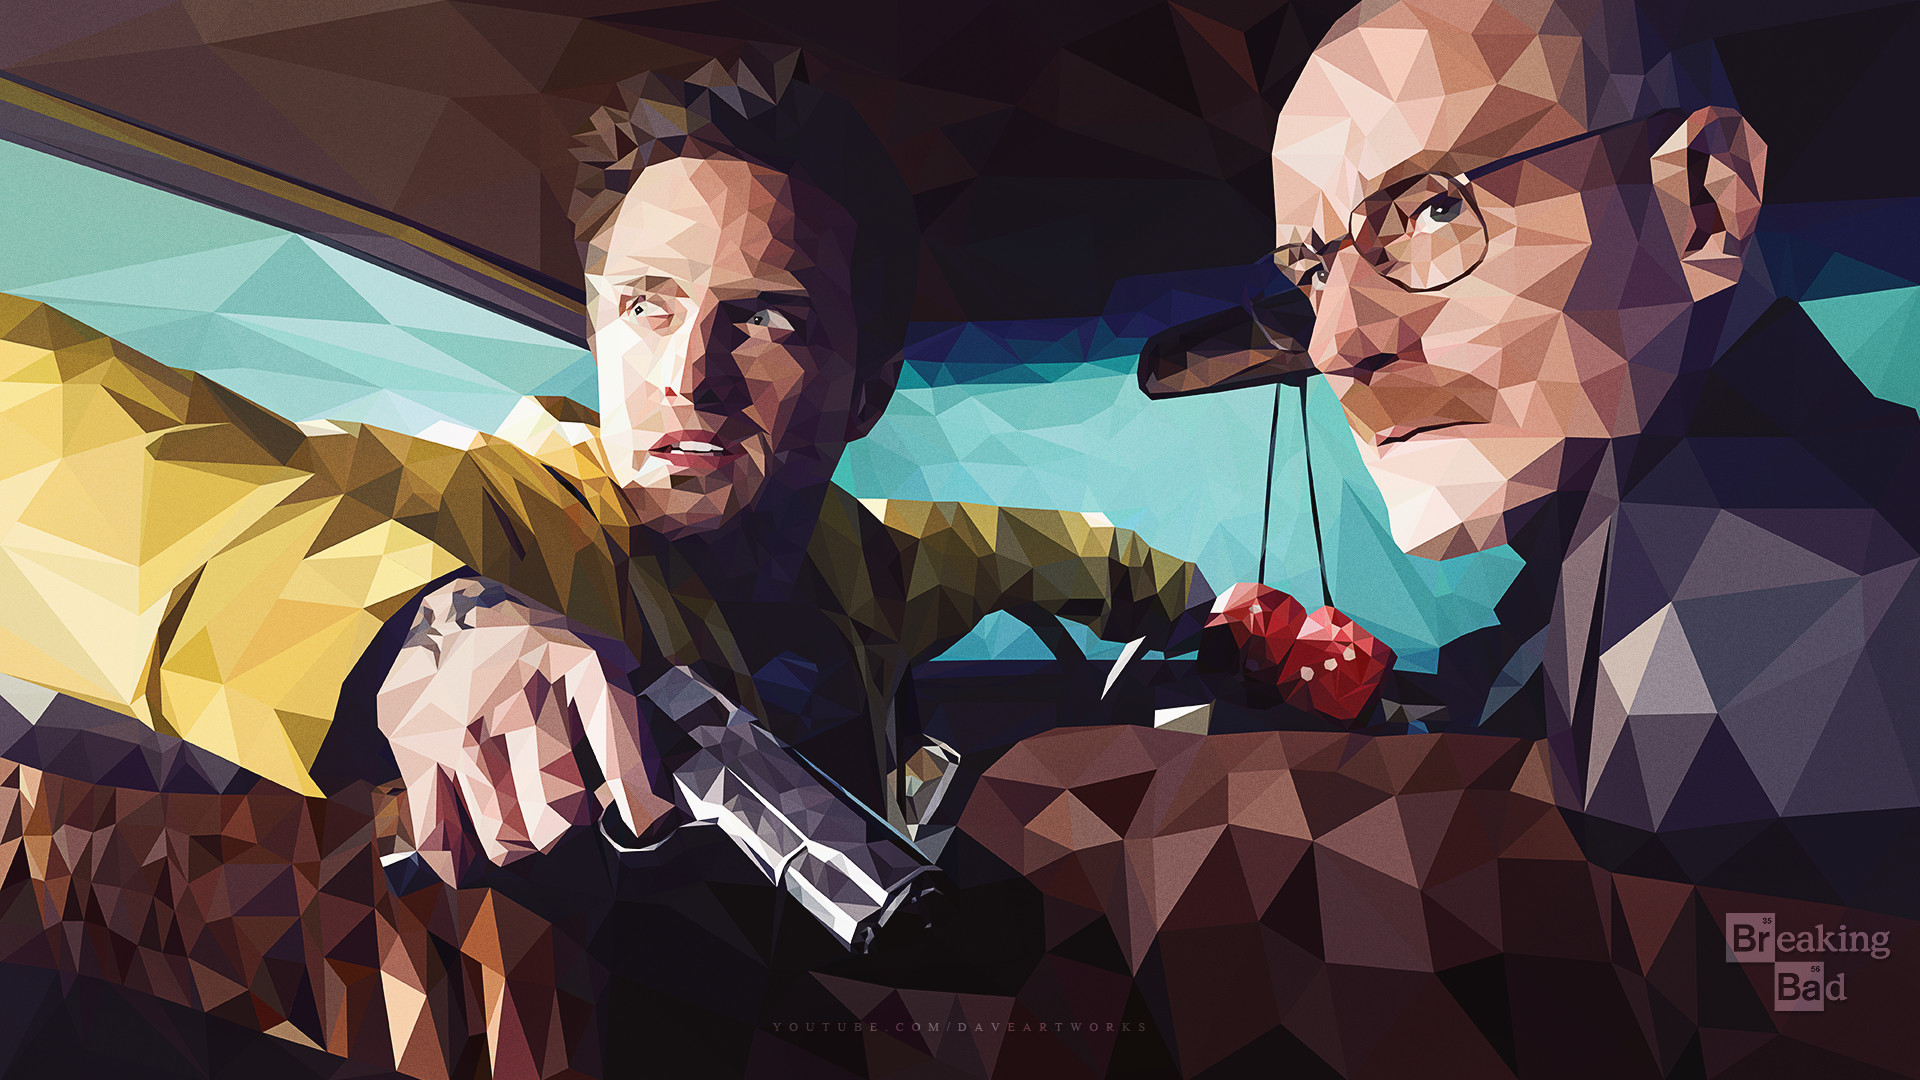 Res: 1920x1080, ... Breaking Bad - Low-Poly - Wallpaper by DaveArtworks